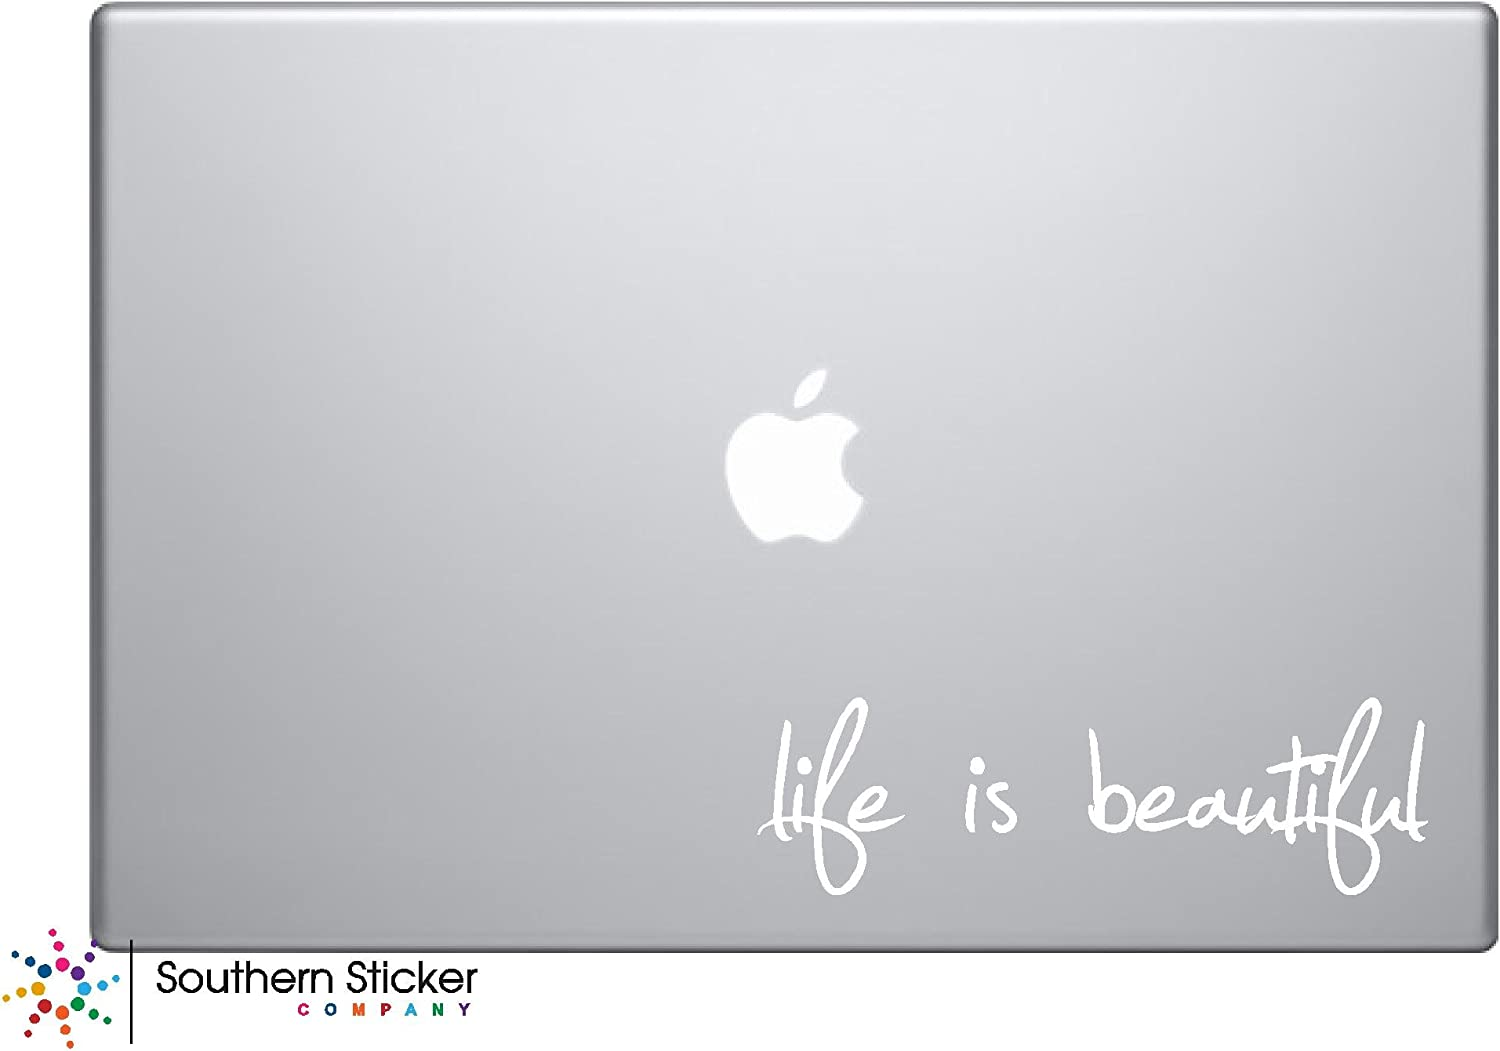 Life Is Beautiful Laptop Apple Silhouette Doctor Macbook Symbol Keypad Iphone Apple Ipad Decal Skin Sticker Laptop (white)